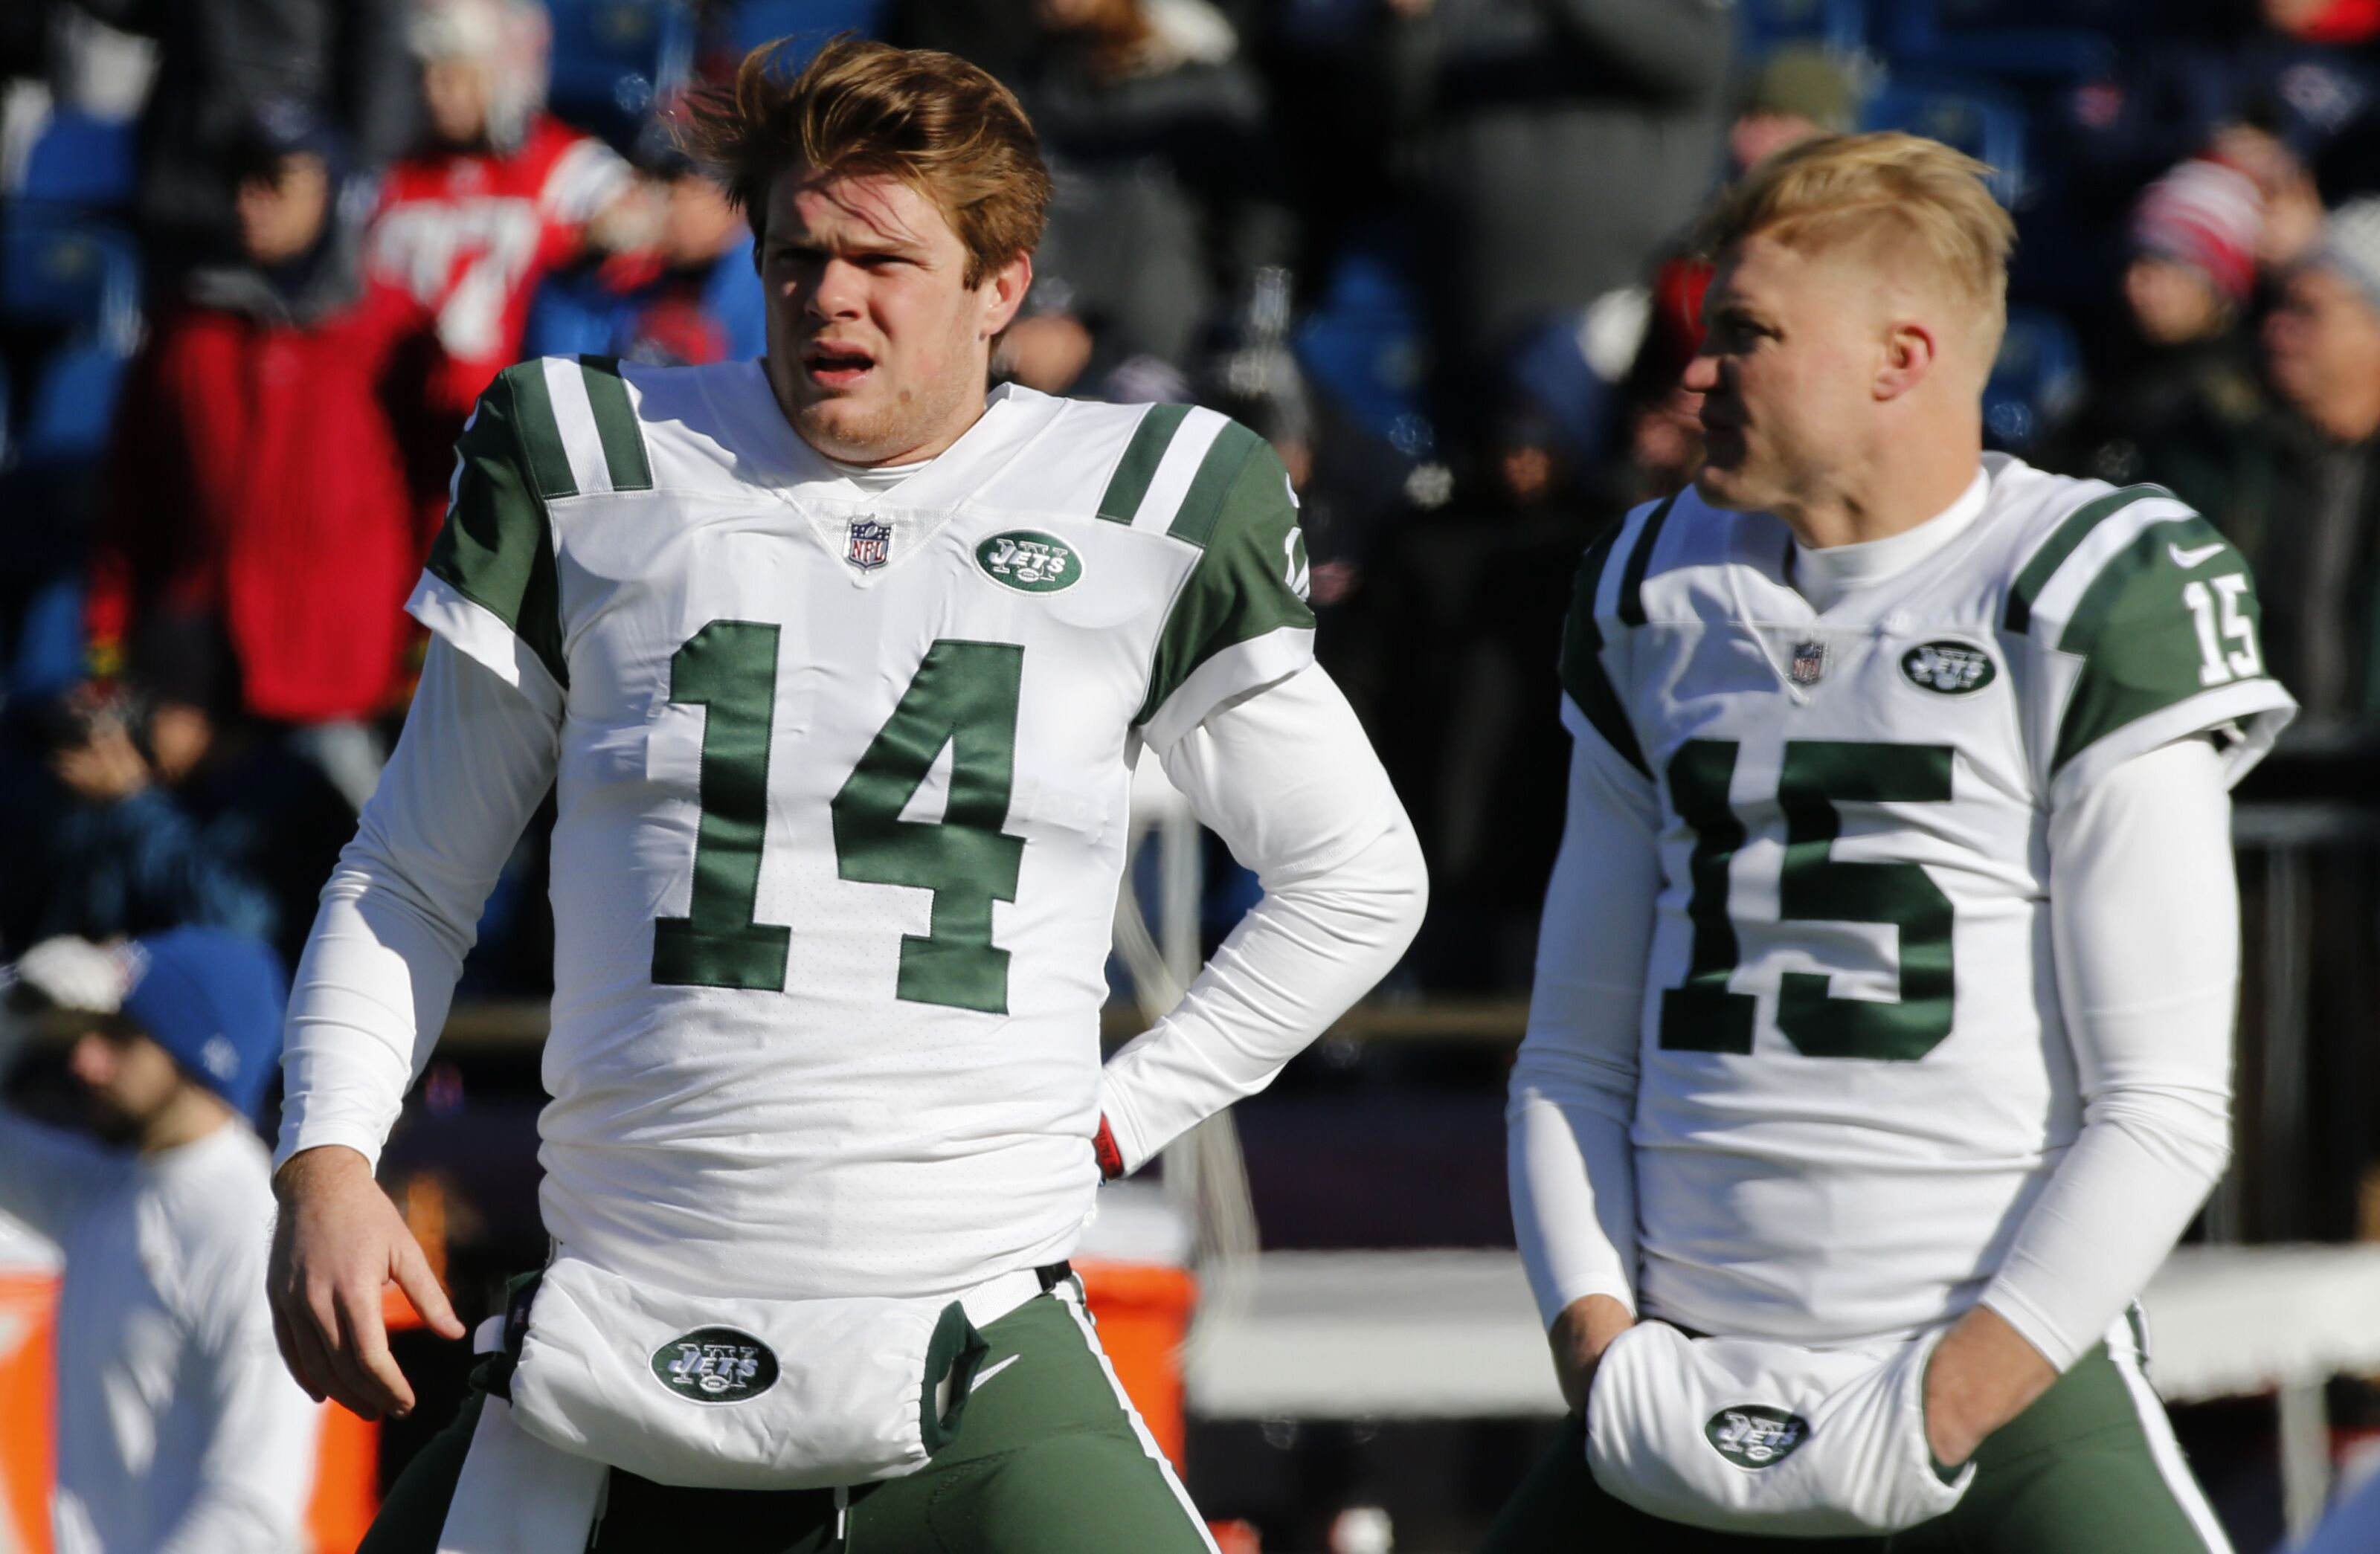 New York Jets: Sam Darnold loses more than just a teammate in Josh McCown